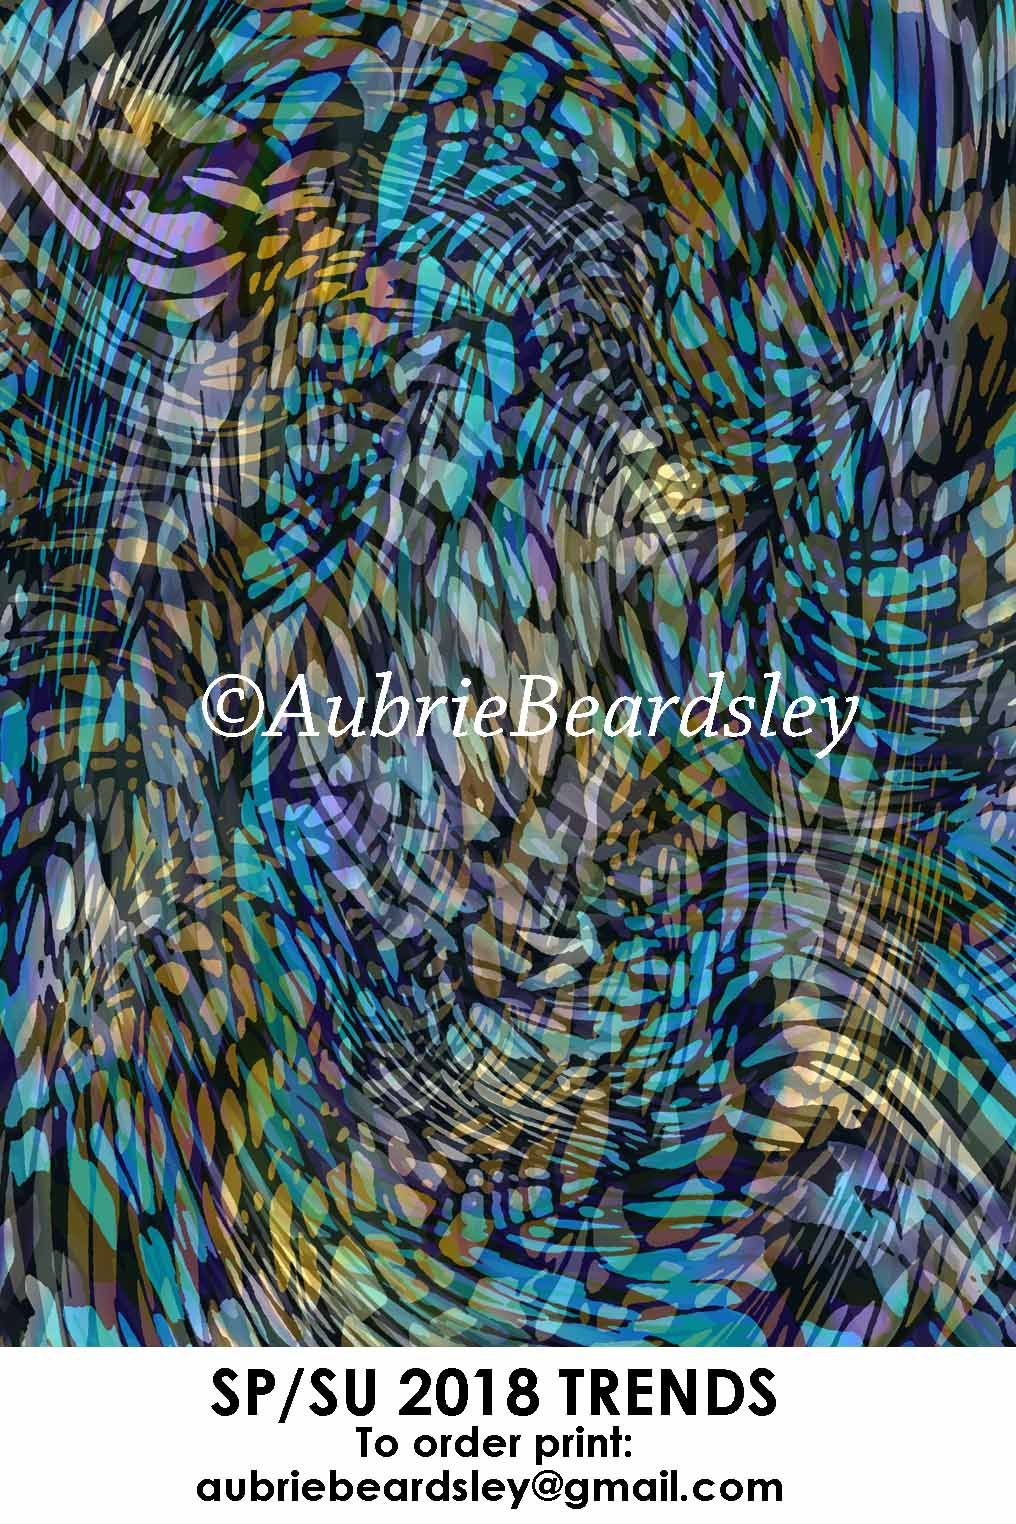 ©AubrieBeardsley #print #pattern #textile #textiledesign #textiledesigner #designer #surfacedesign #swimwear #activewear #fashion